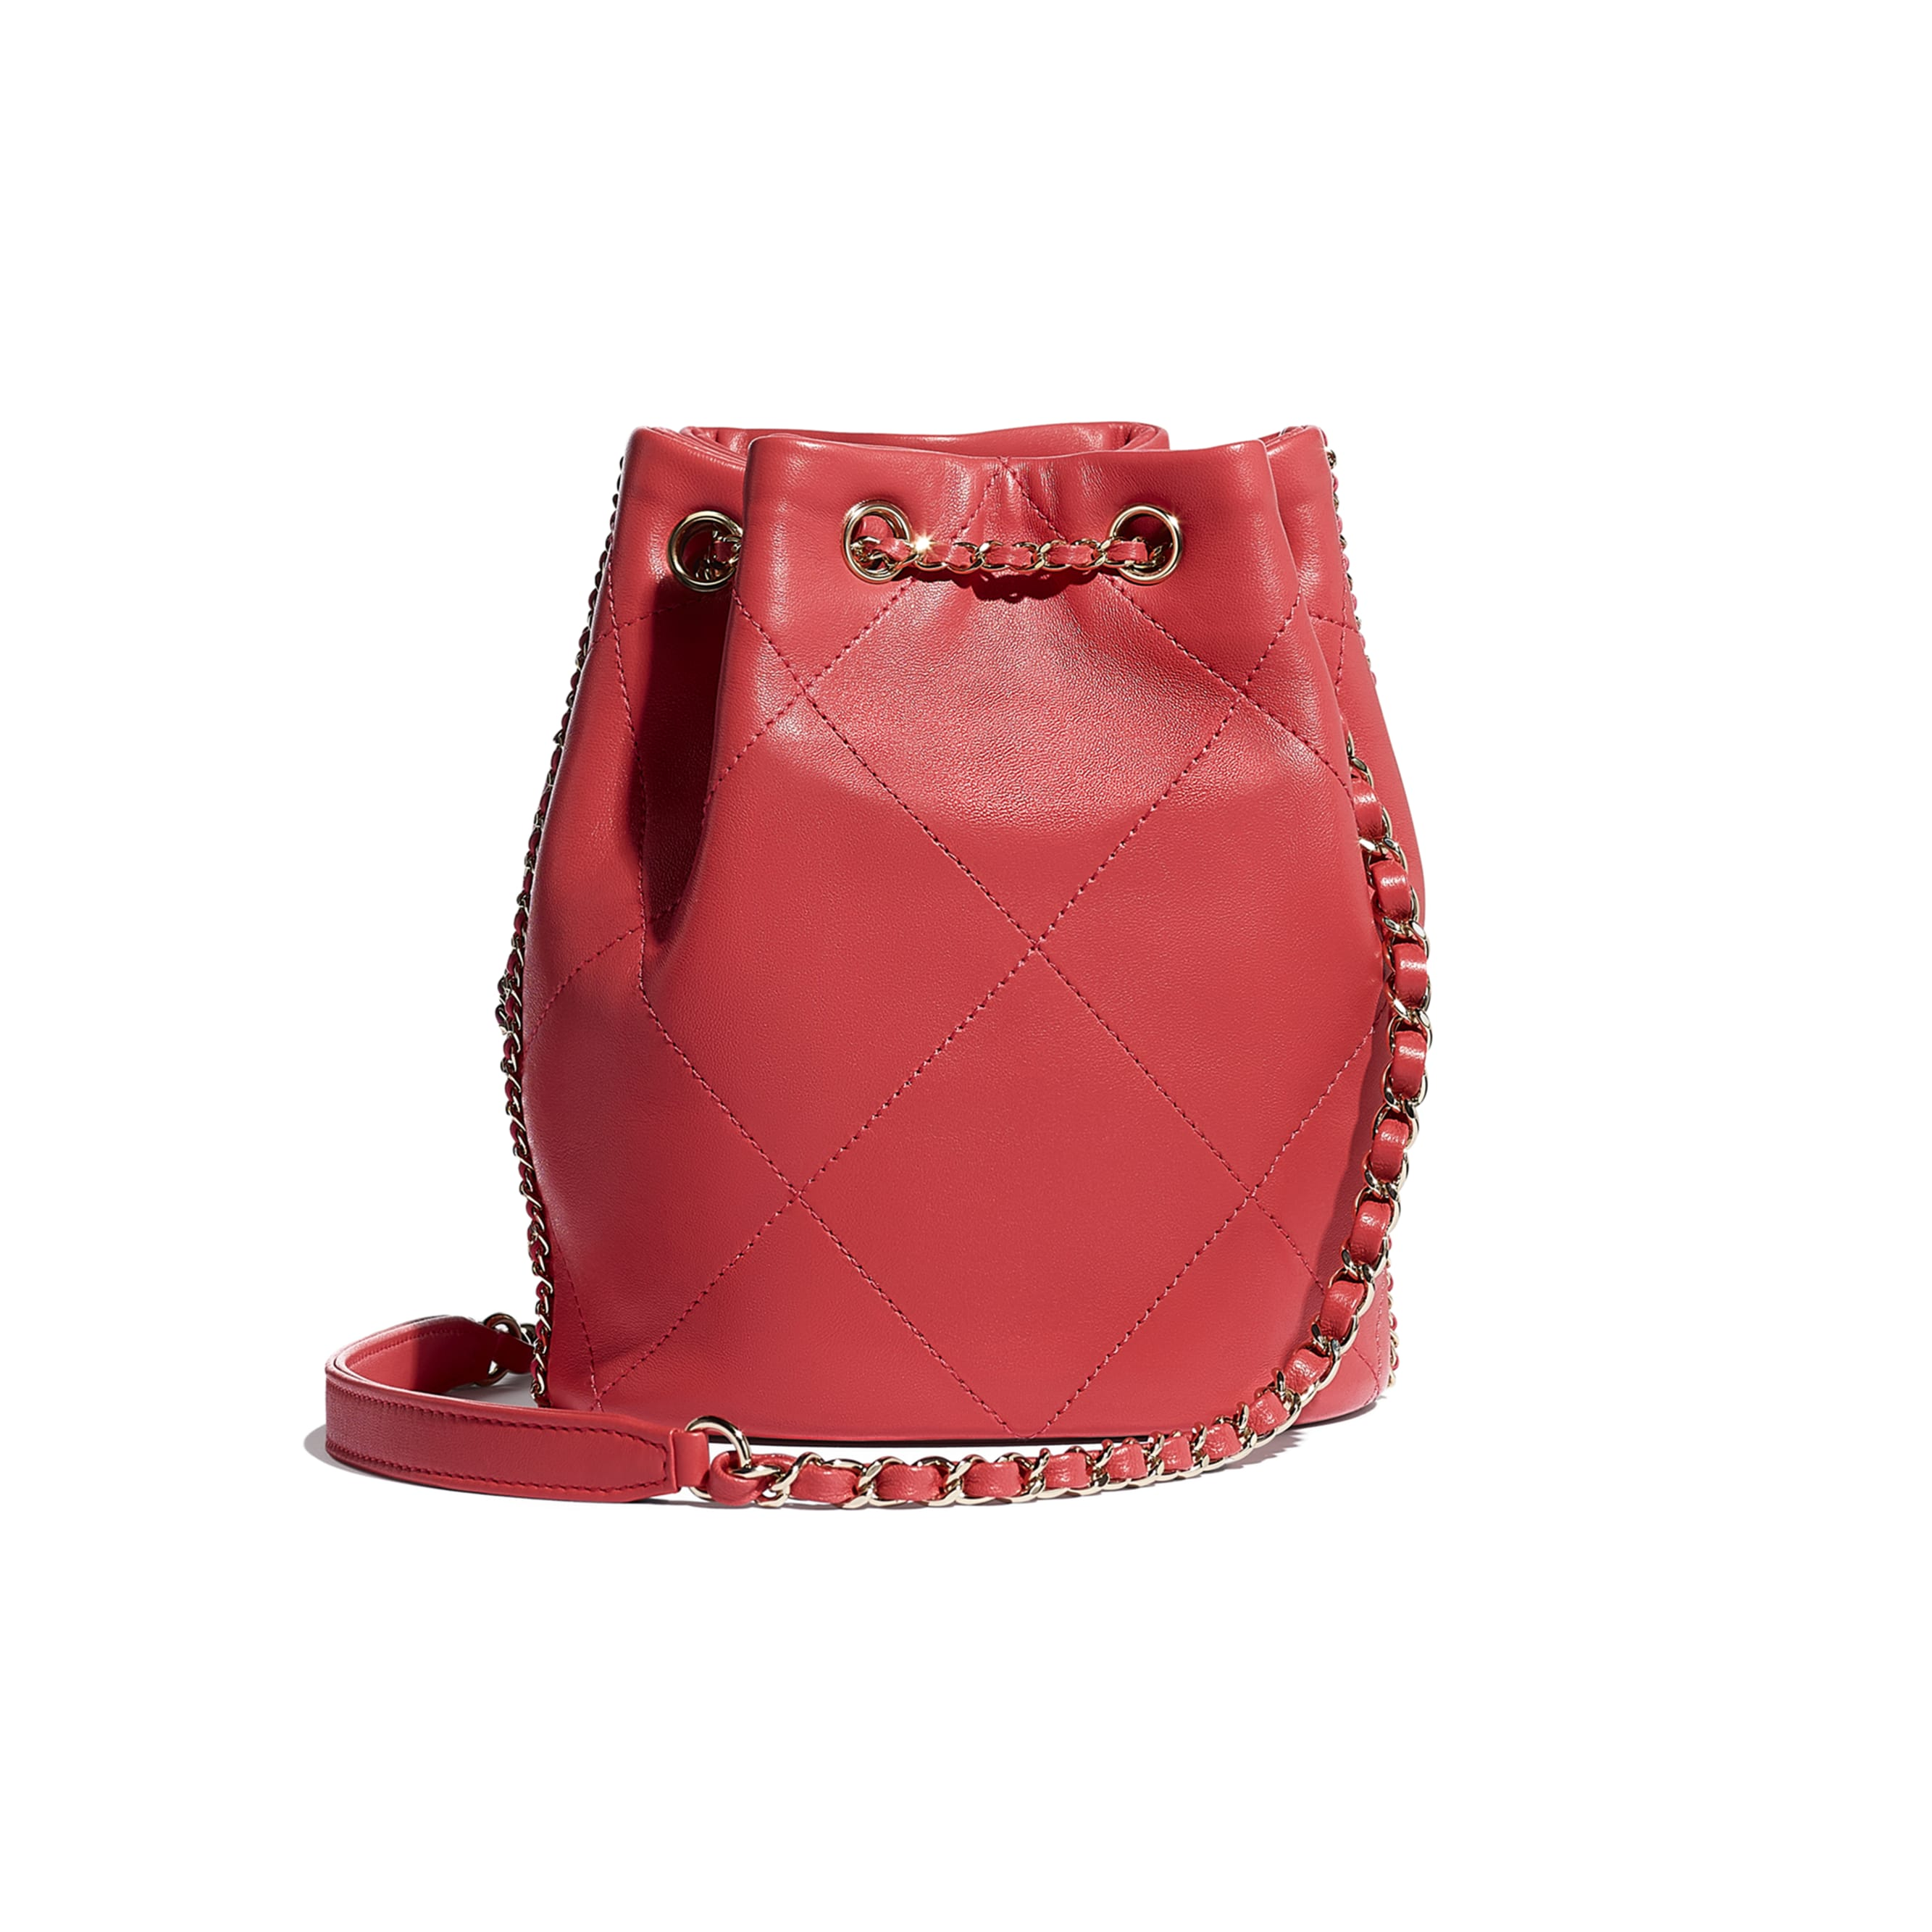 Drawstring Bag - Red & Multicolor - Lambskin & Gold Metal  - CHANEL - Alternative view - see standard sized version